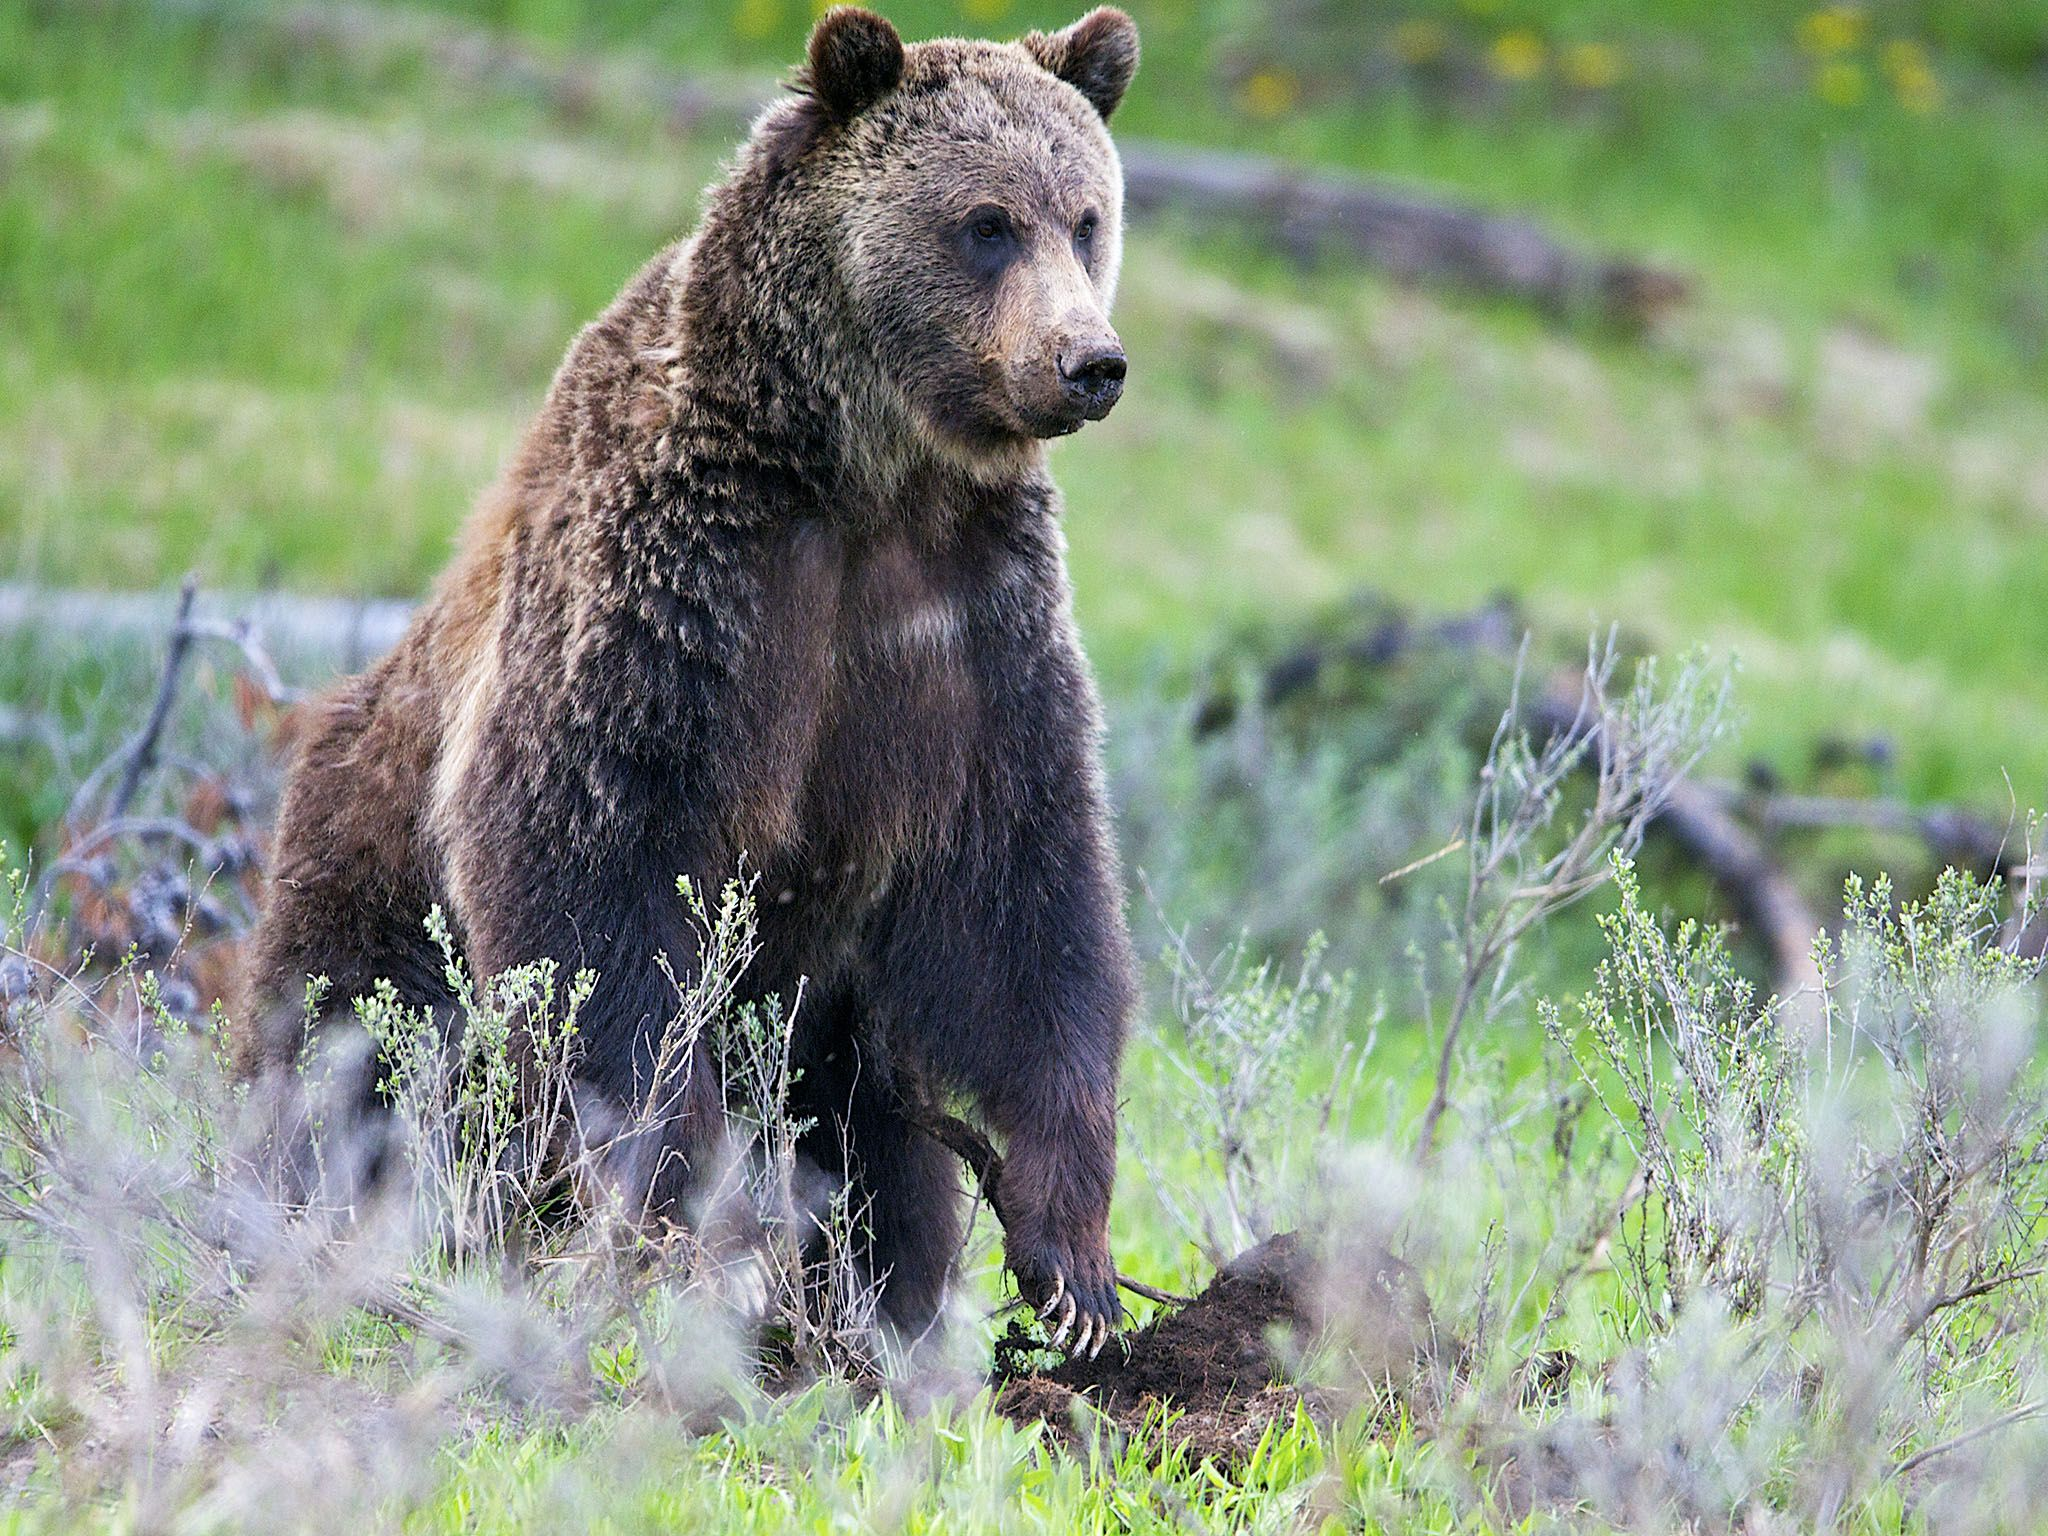 Yellowstone National Park: The Grizzly is the apex predator of the Yellowstone National Park. Thi... [Photo of the day - February 2016]